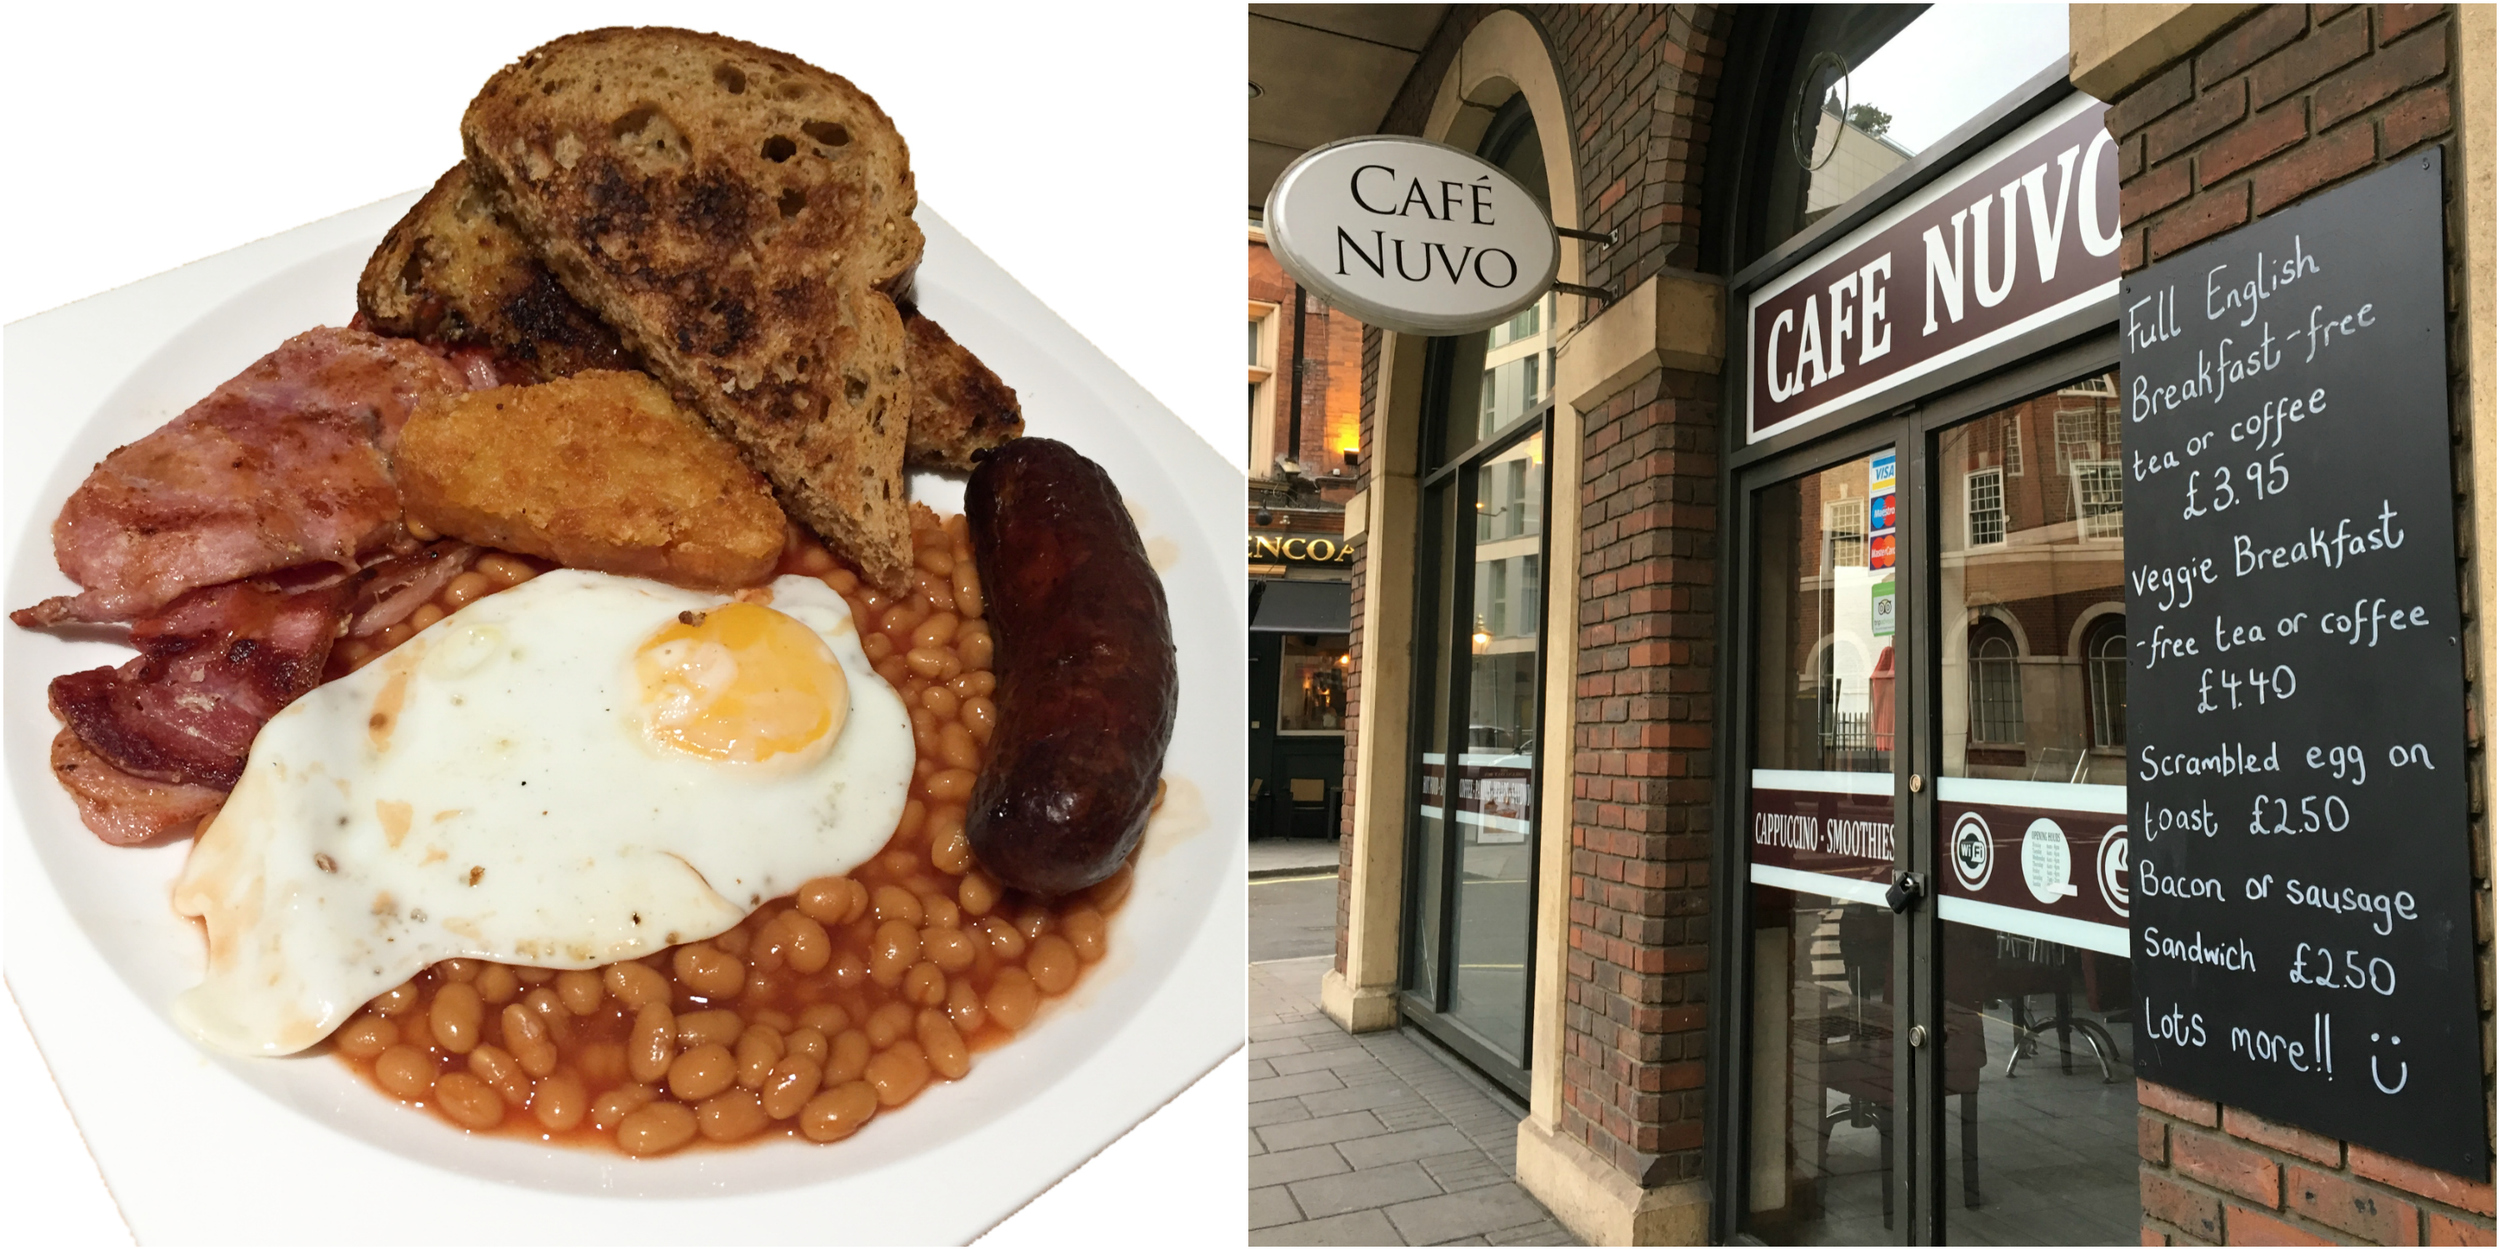 Cafe Nuvo offers simple and tasty breakfast and lunch items and a comfortable upstairs seating area. (Images: Eileen Hsieh)